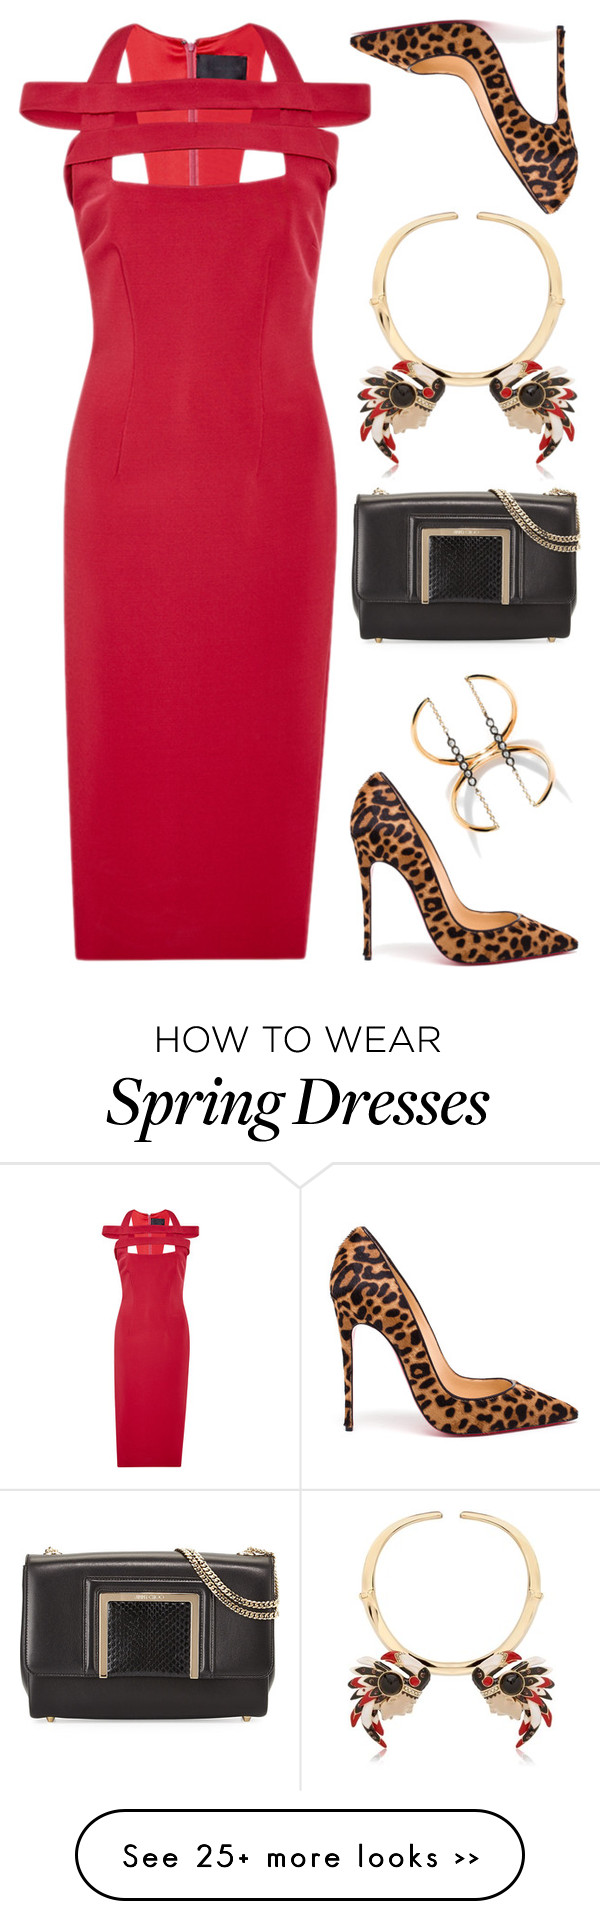 """Red & Leopard"" by cherieaustin on Polyvore featuring Cushnie Et Ochs, Christian Louboutin, Jimmy Choo, Schield Collection and Yannis Sergakis"